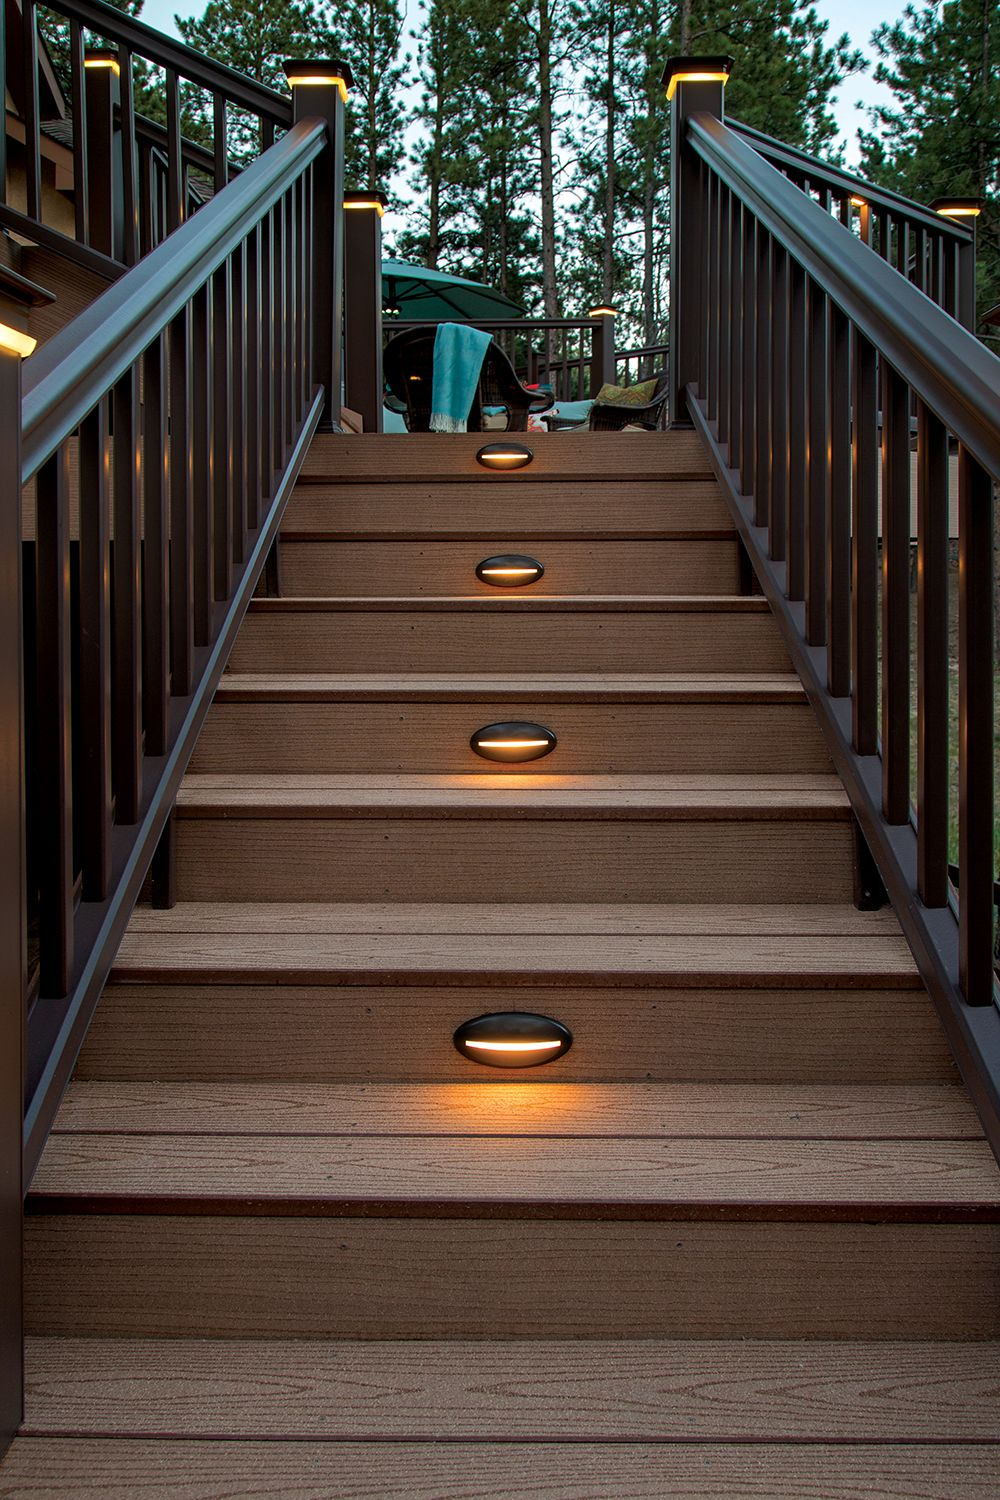 Timbertech Riser Lights Will Help Lead You Safely To Your Home